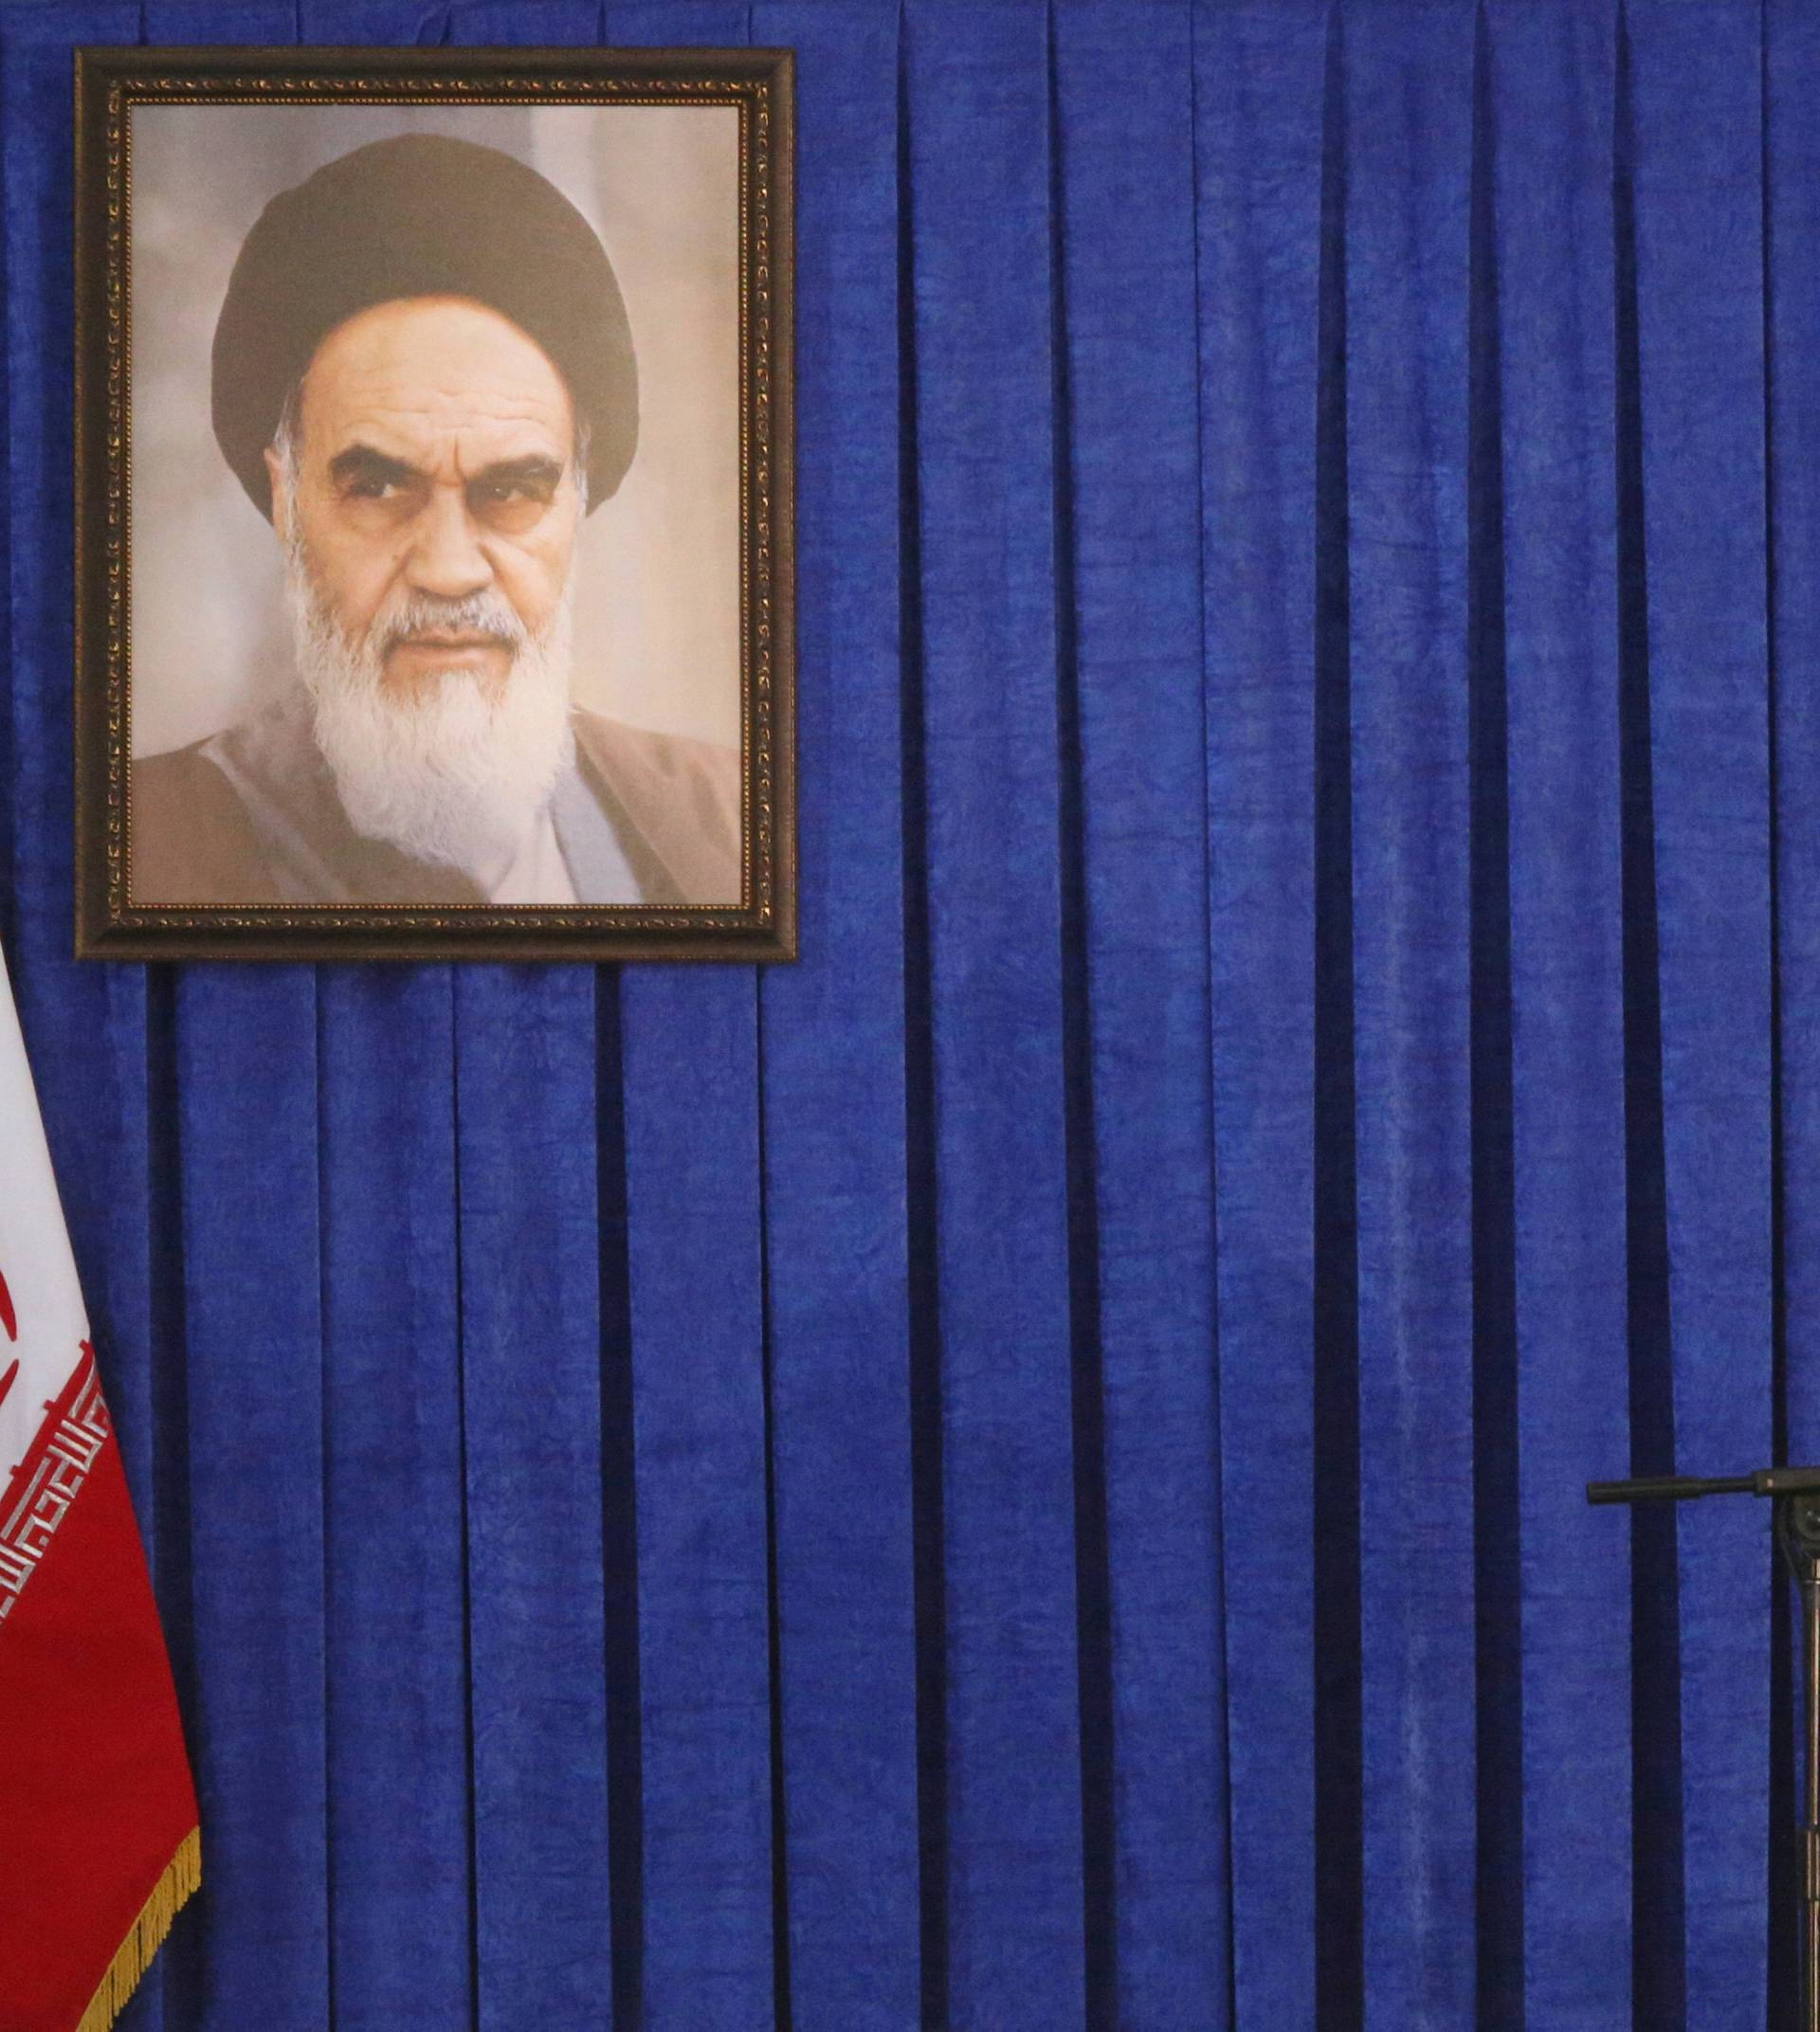 FILE PHOTO: Iran's Supreme Leader Ayatollah Ali Khamenei delivers a speech during a ceremony marking the death anniversary of the founder of the Islamic Republic Ayatollah Ruhollah Khomeini, in Tehran